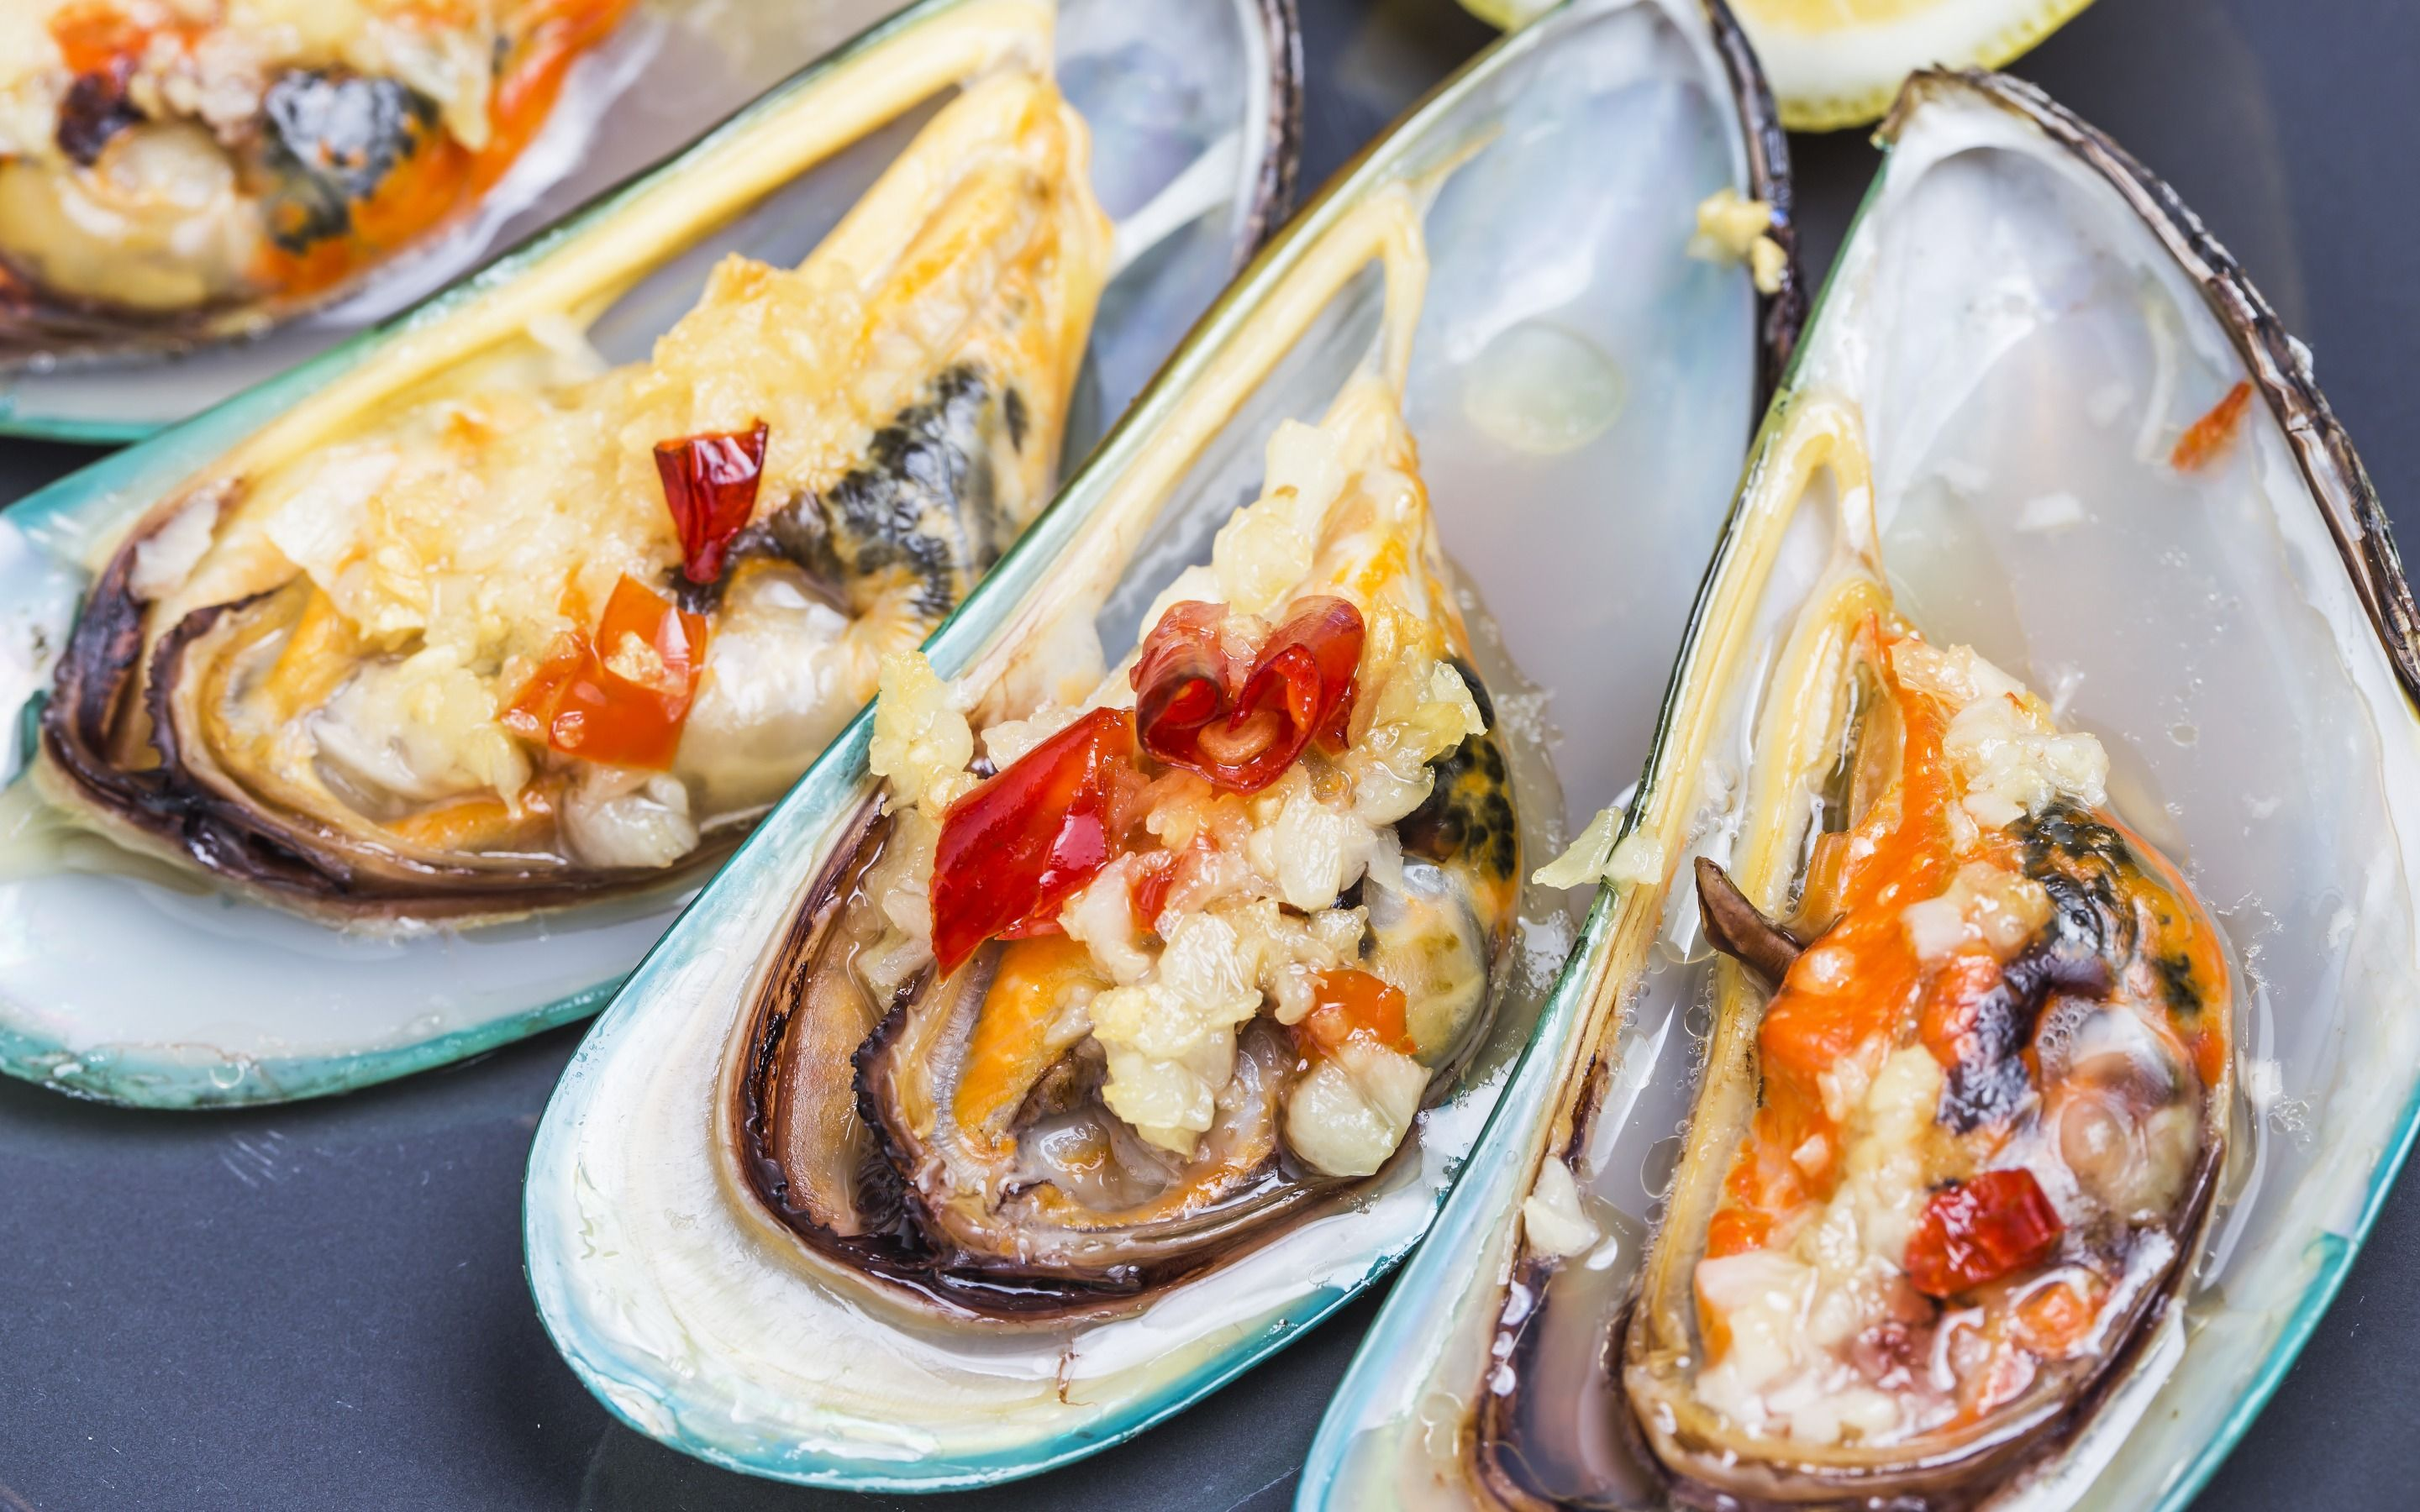 Download wallpapers oysters, mussels, seafood, fish dishes